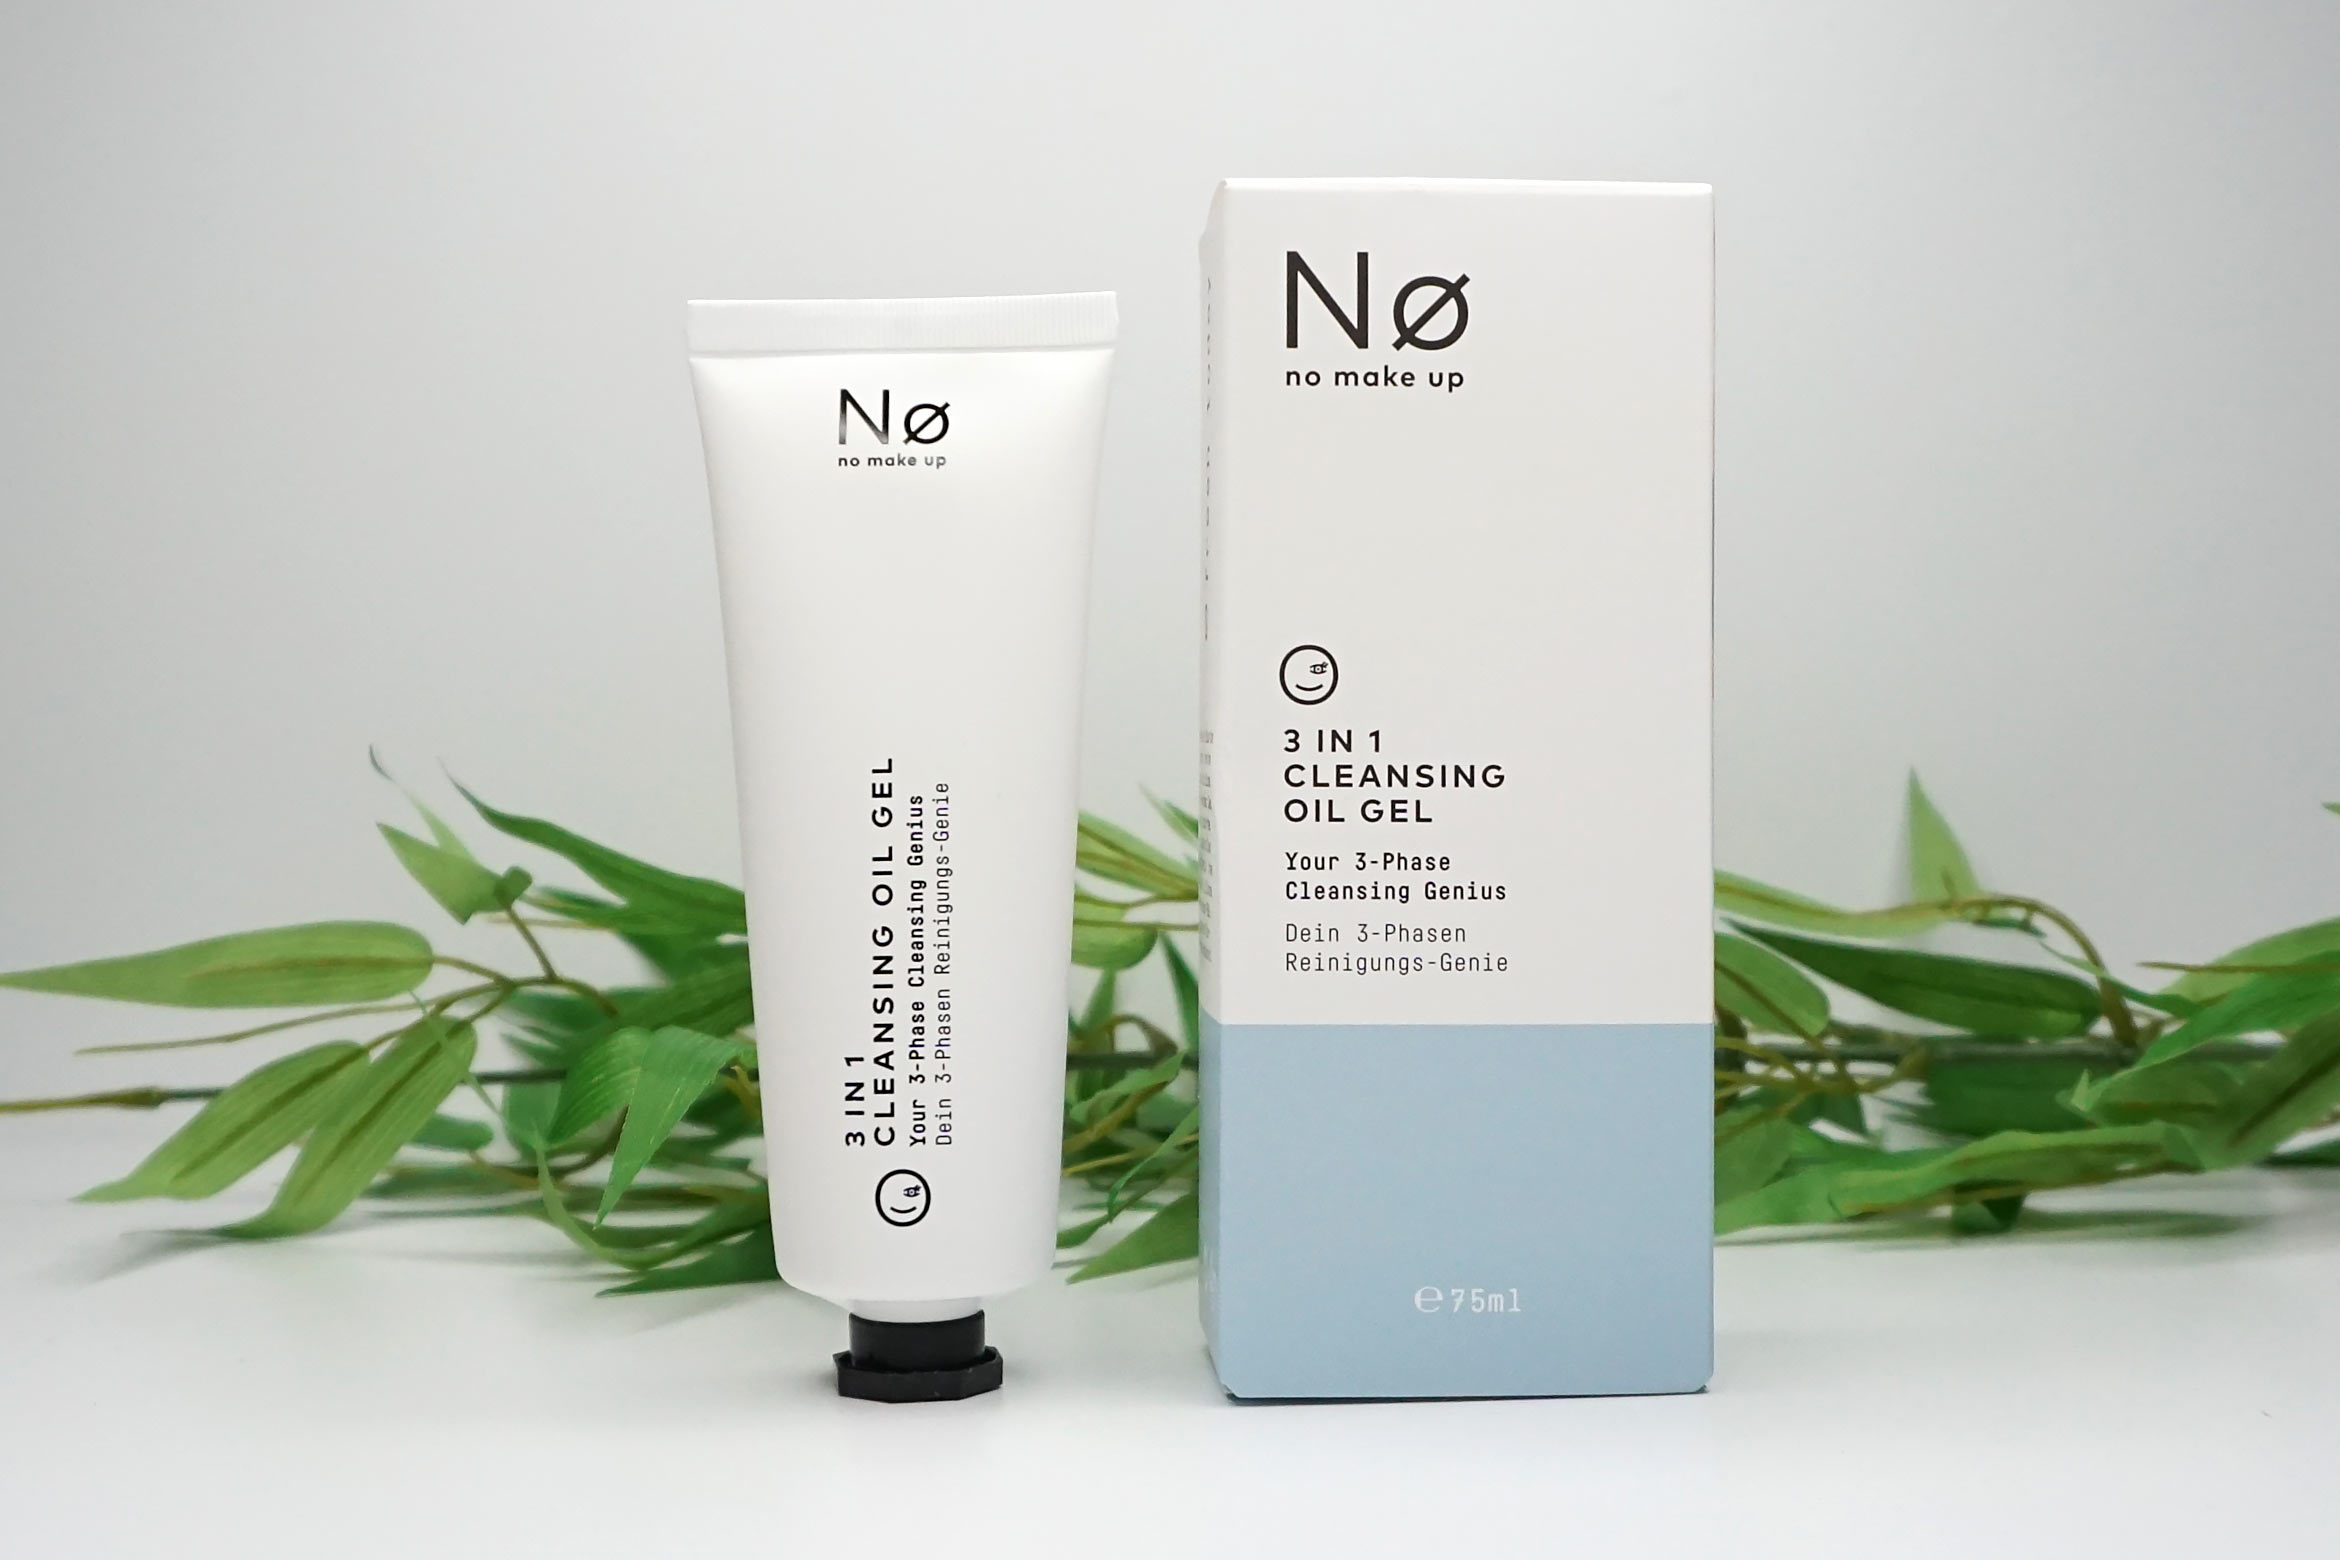 no-make-up-3-in-1-cleansing-oil-gel-review